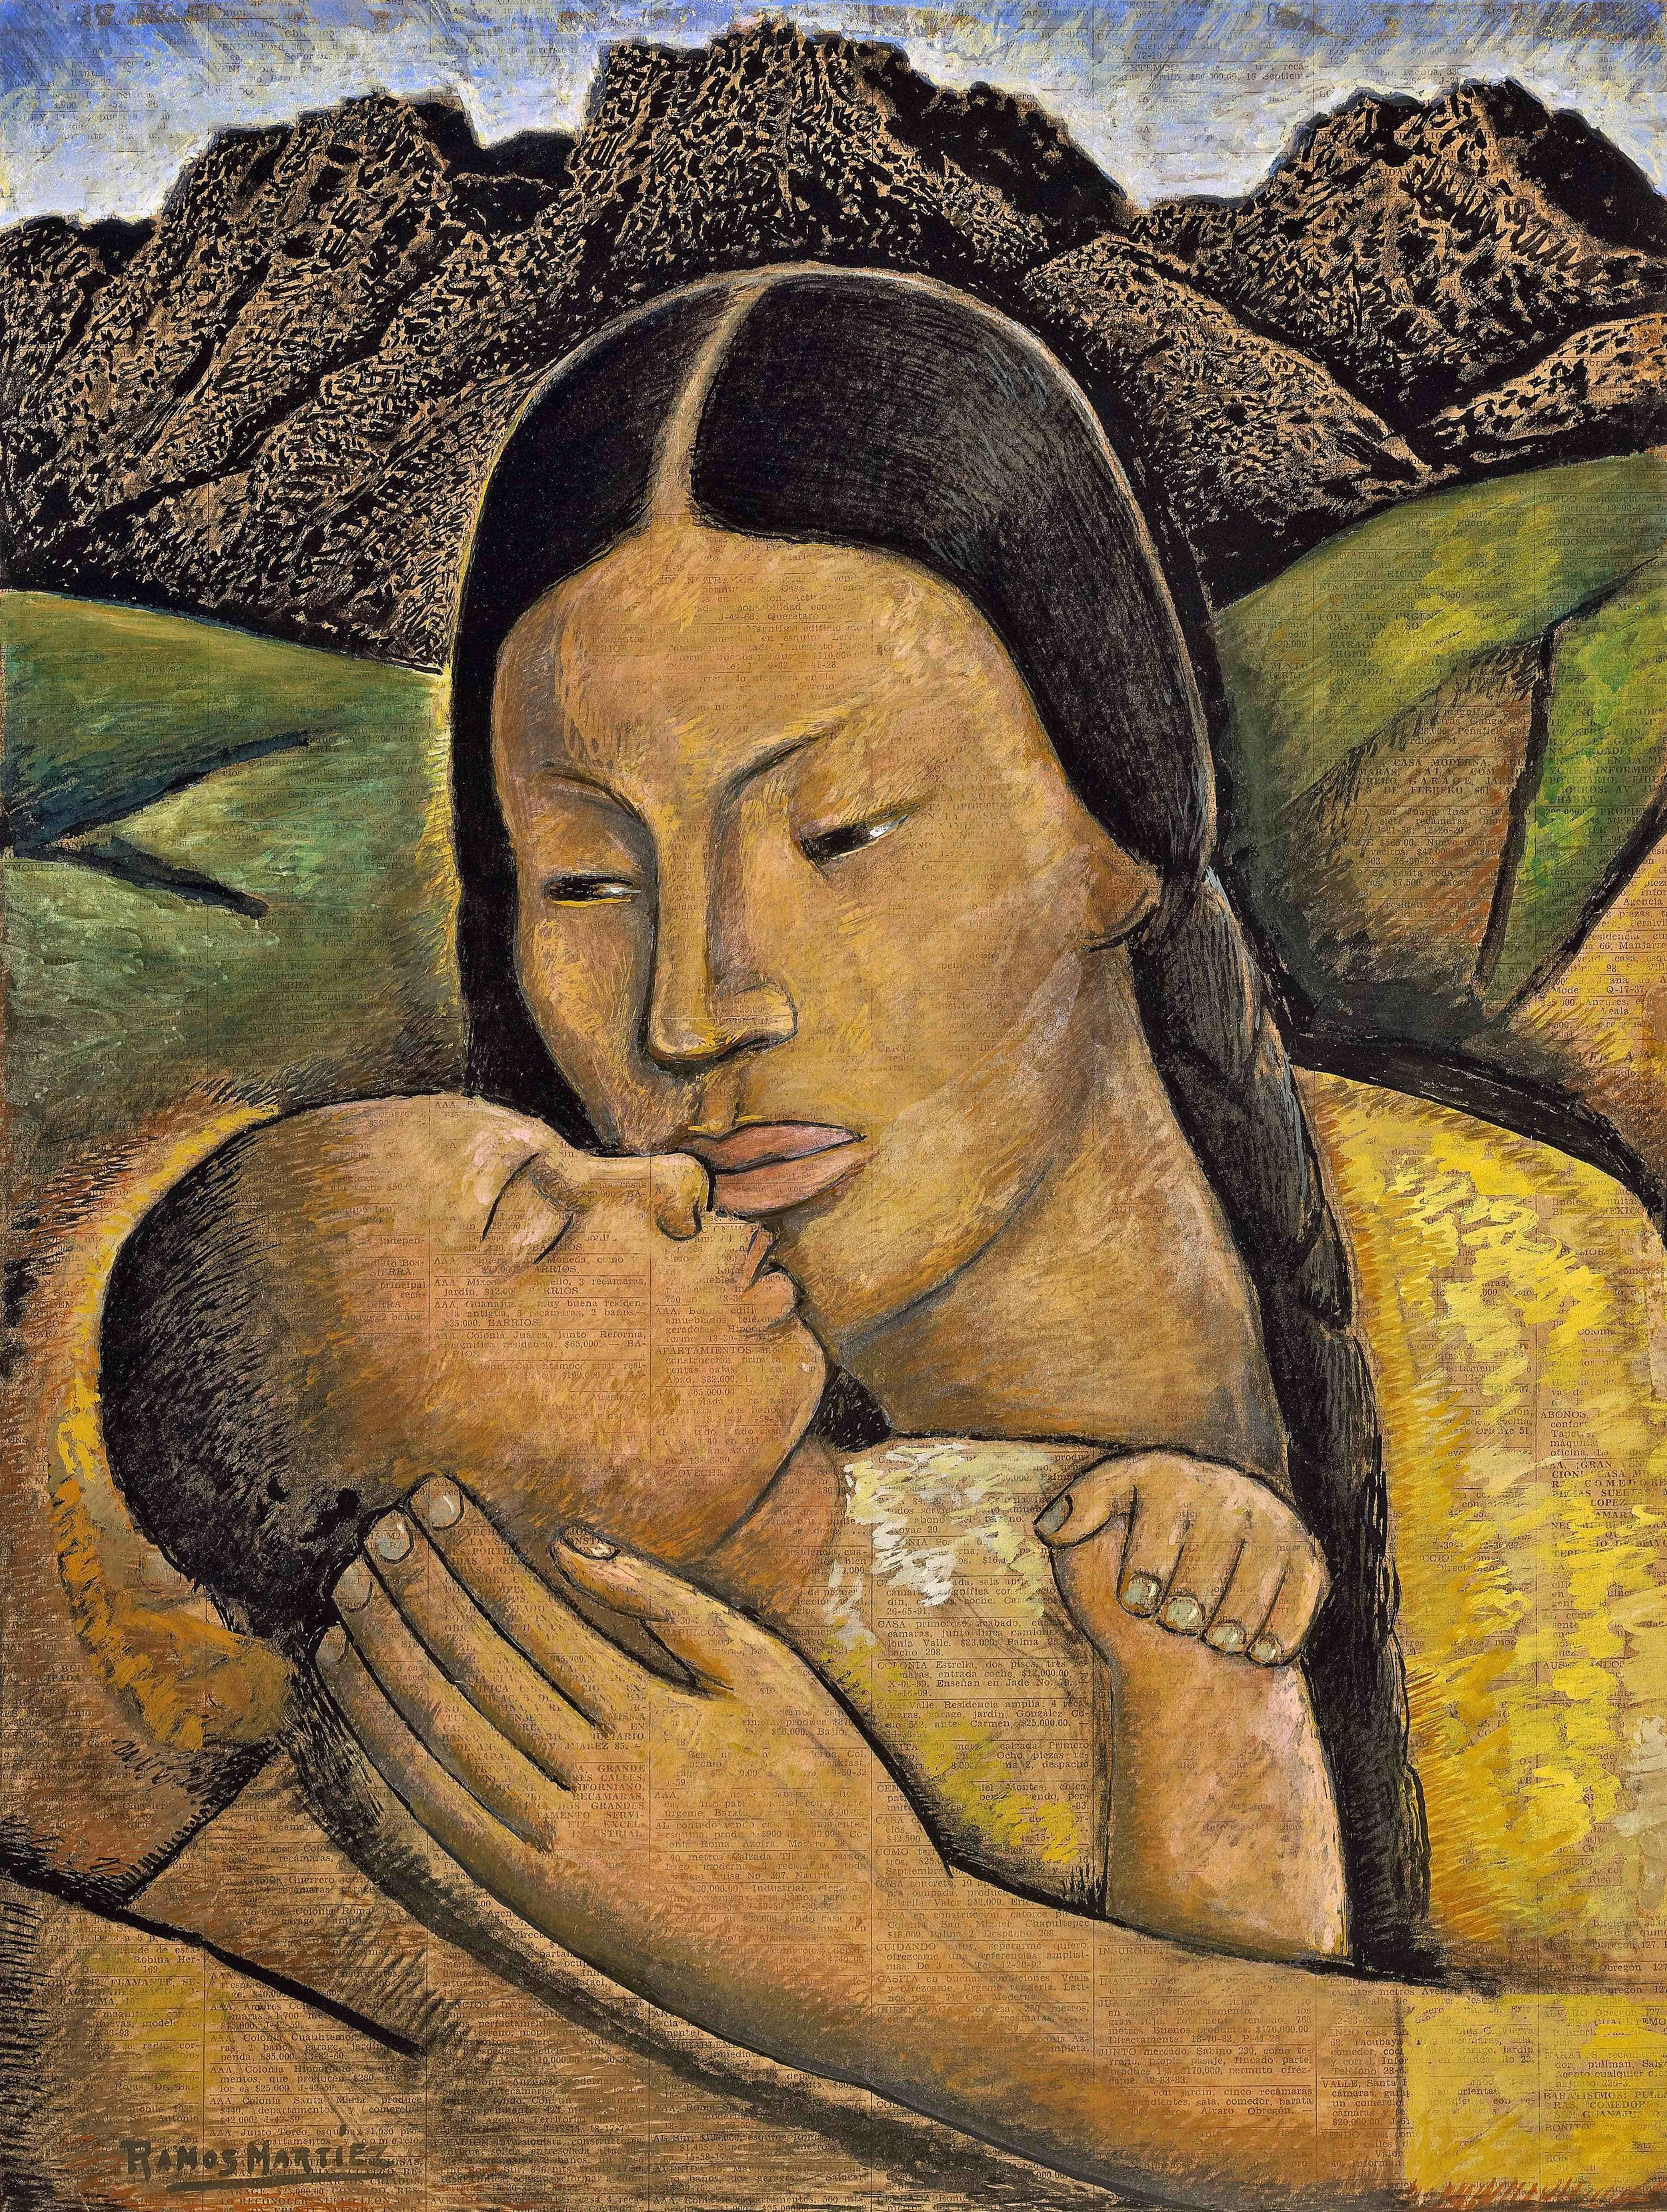 Madre y Niño / Mother and Child  ca. 1945 tempera on newsprint / temple sobre papel periódico (El Universal) 20.8 x 15.8 inches; 52.7 x 40 centímetros Private collection